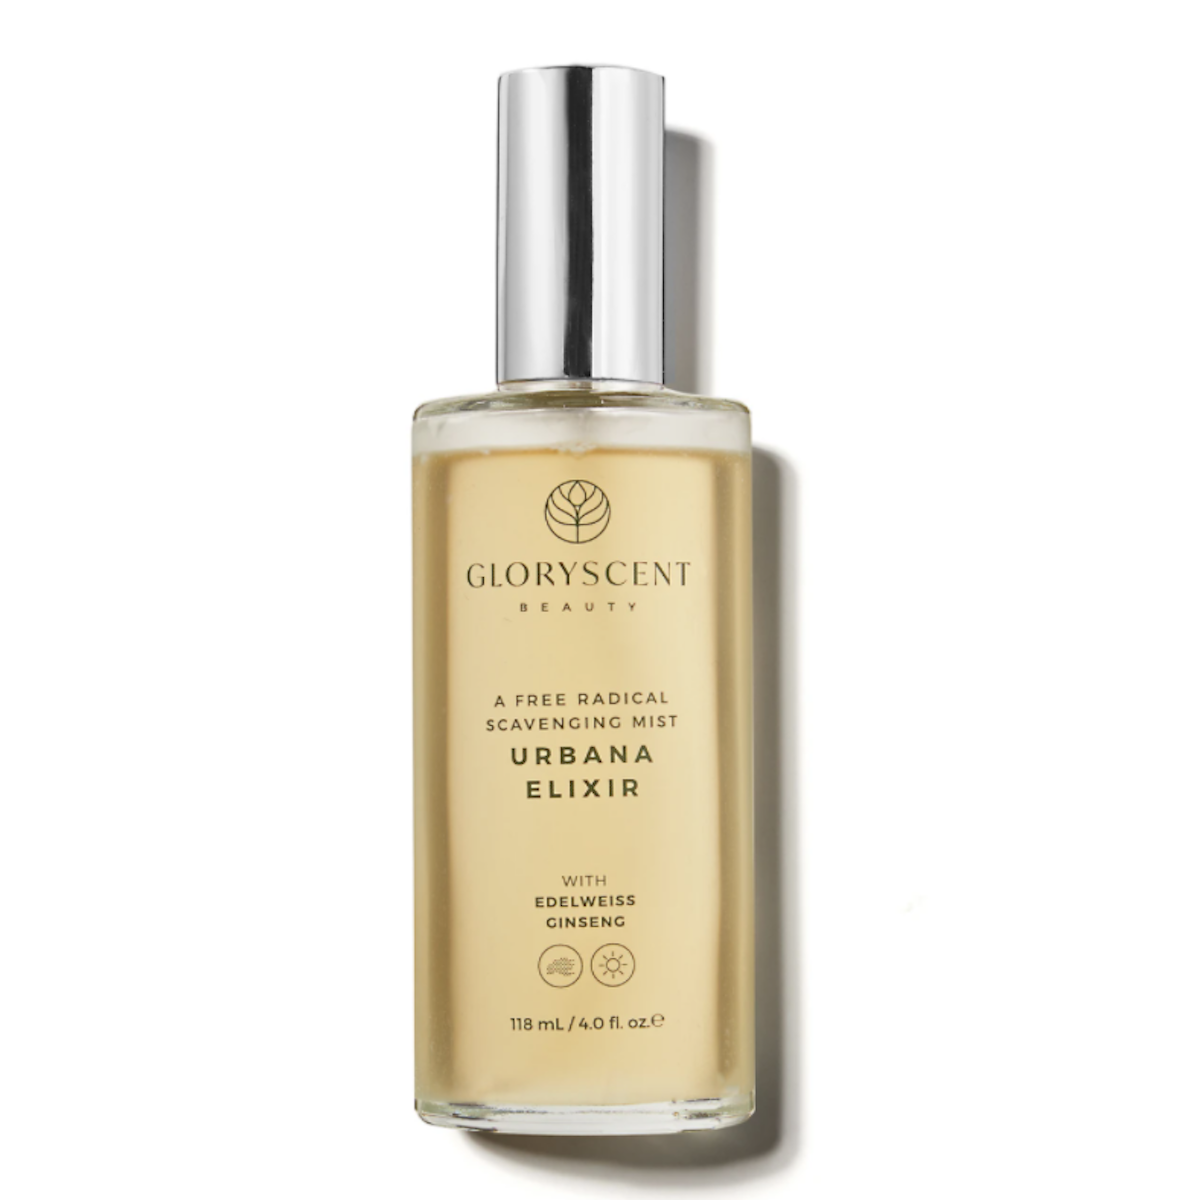 Gloryscent Beauty Urbana Elixir with Edelweiss and Ginseng